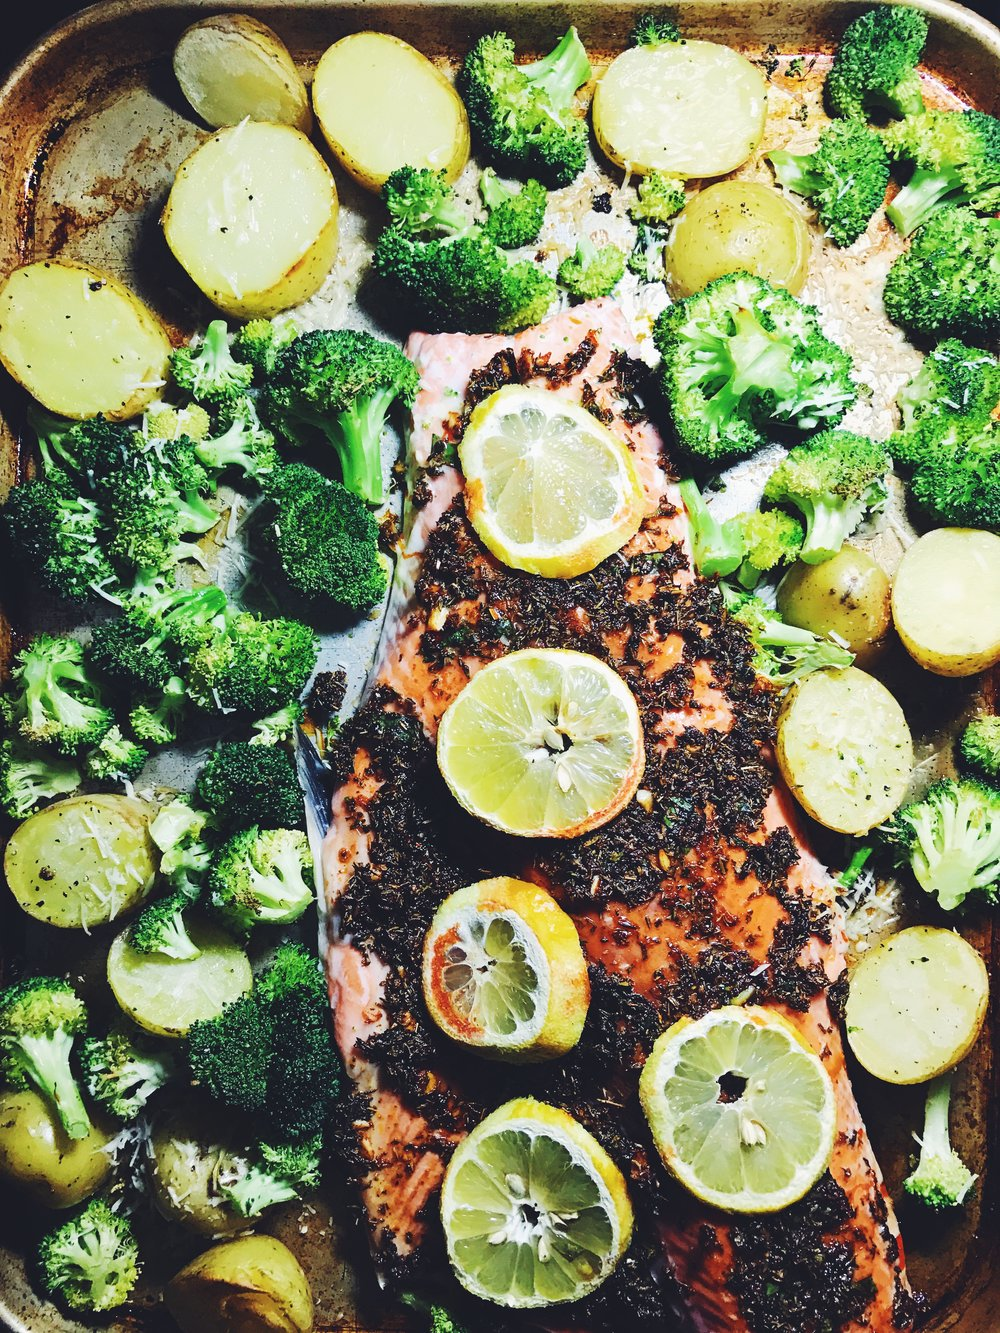 lemon-roasted salmon with broccoli and potatoes